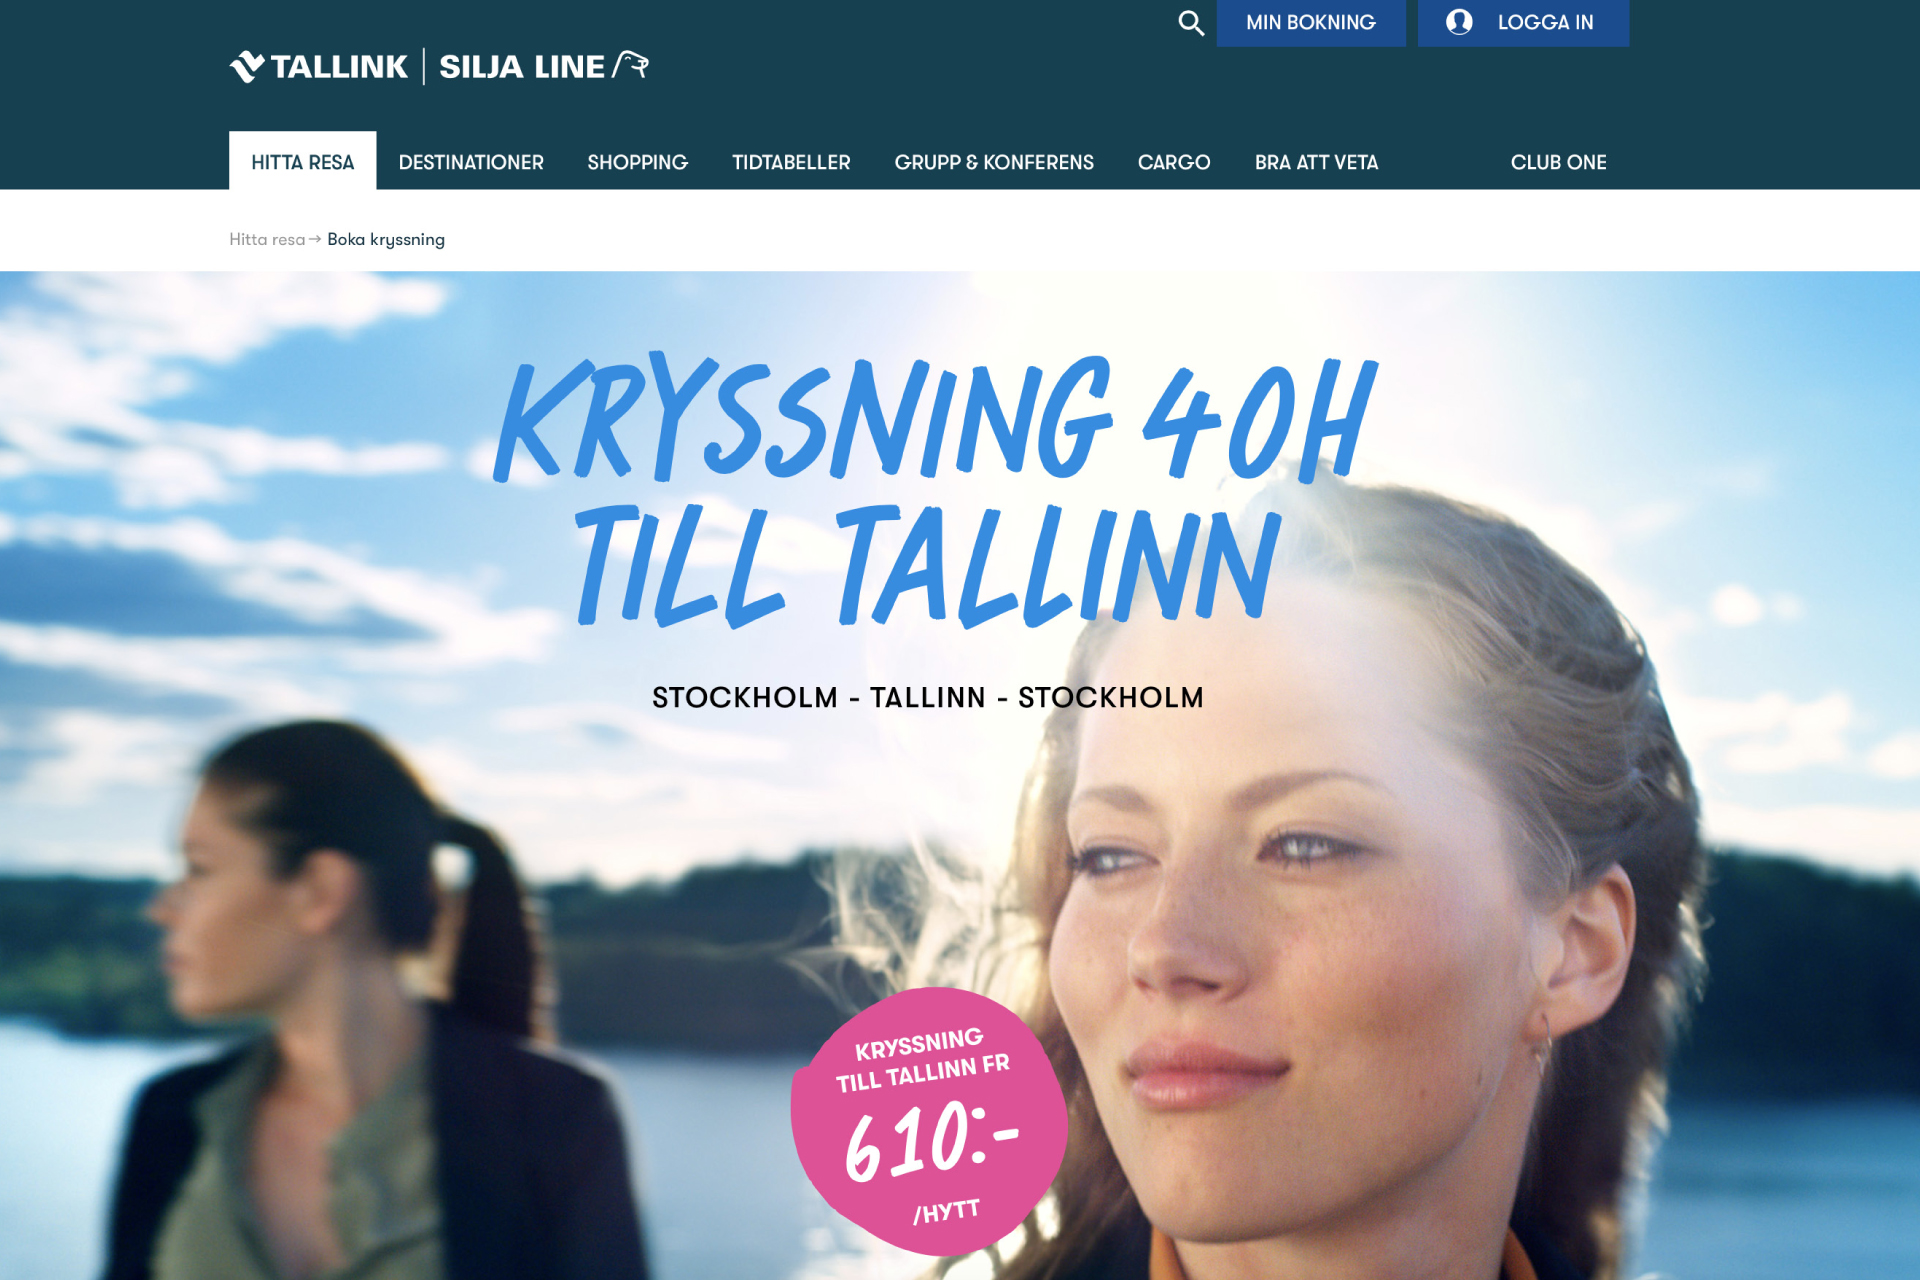 Tallink_PAGE-8